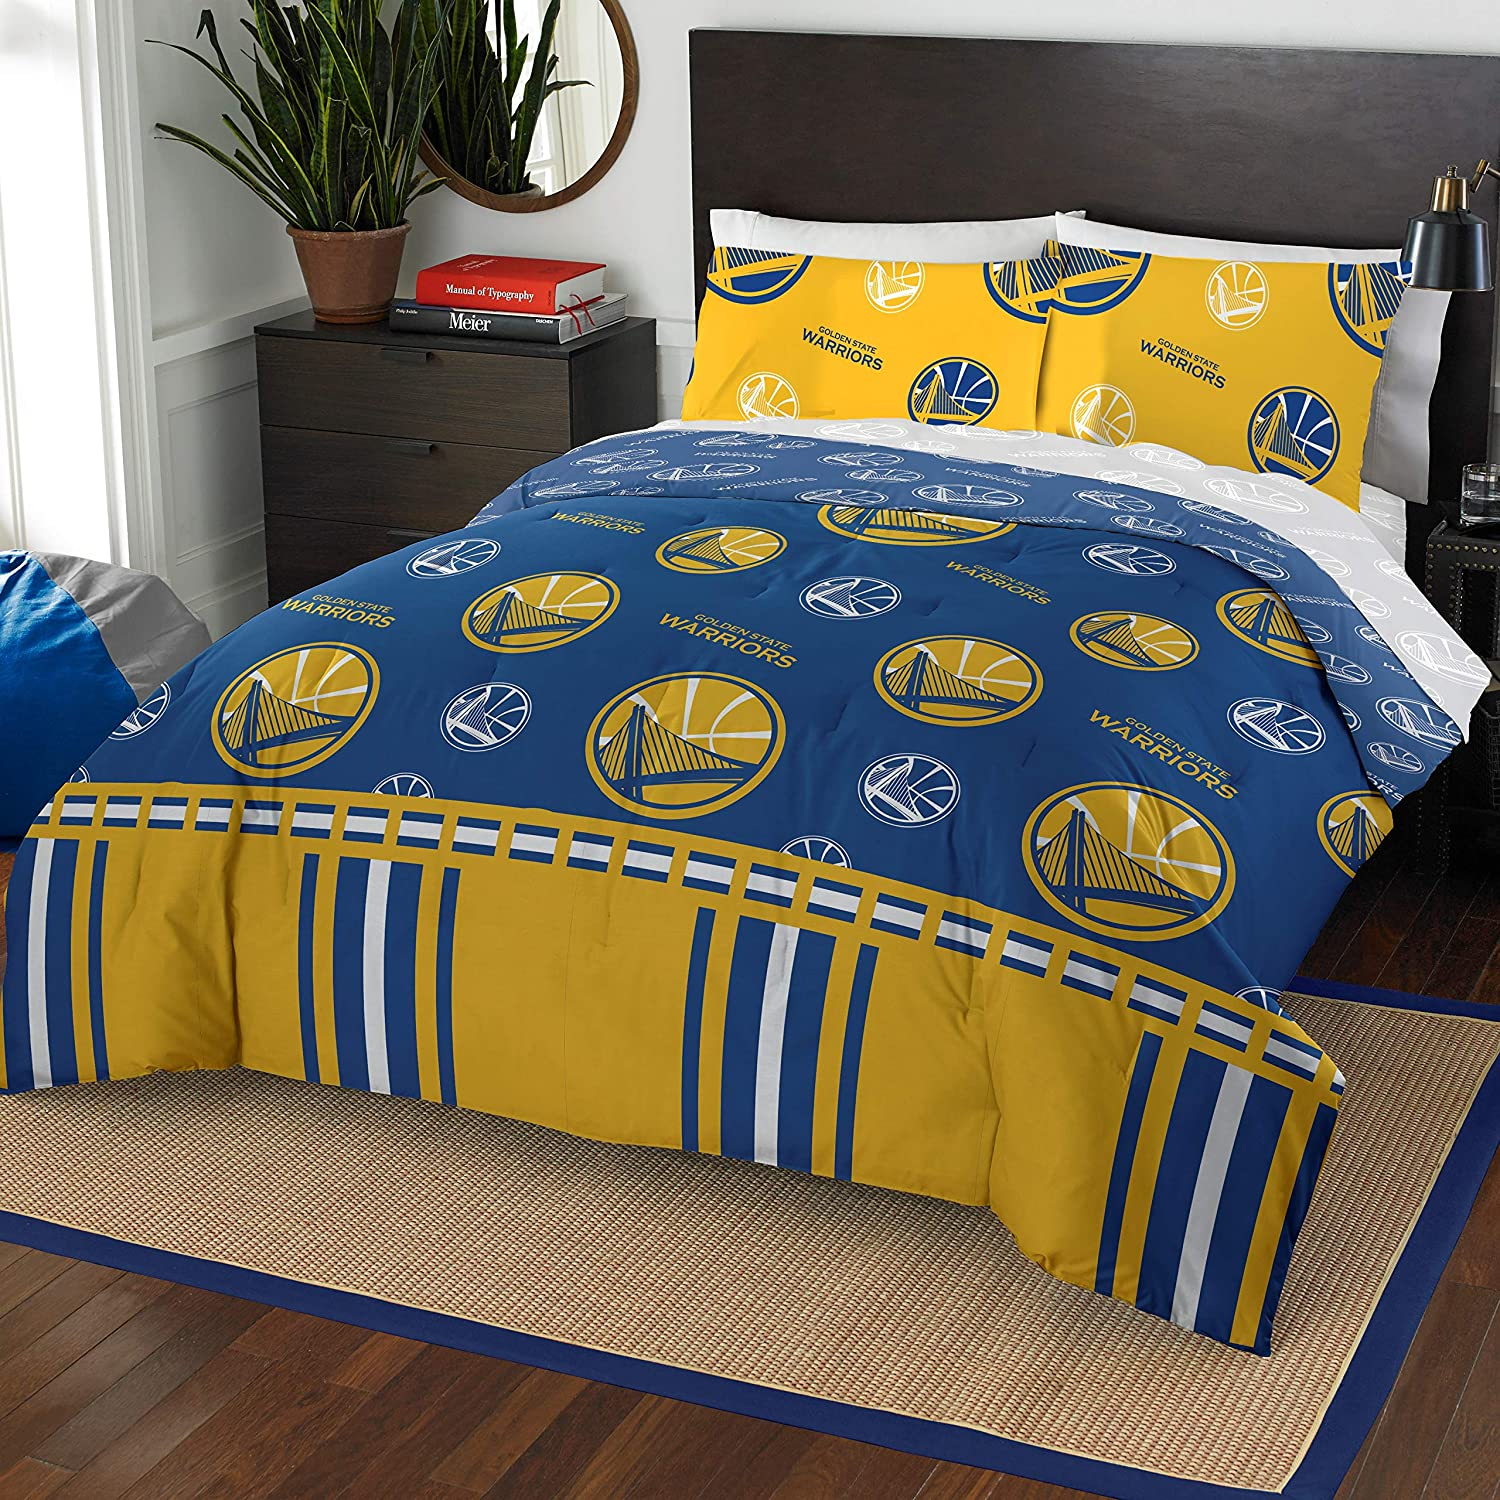 Northwest NBA Golden State Warriors Queen Bed in a Bag Complete Bedding Set #528520859